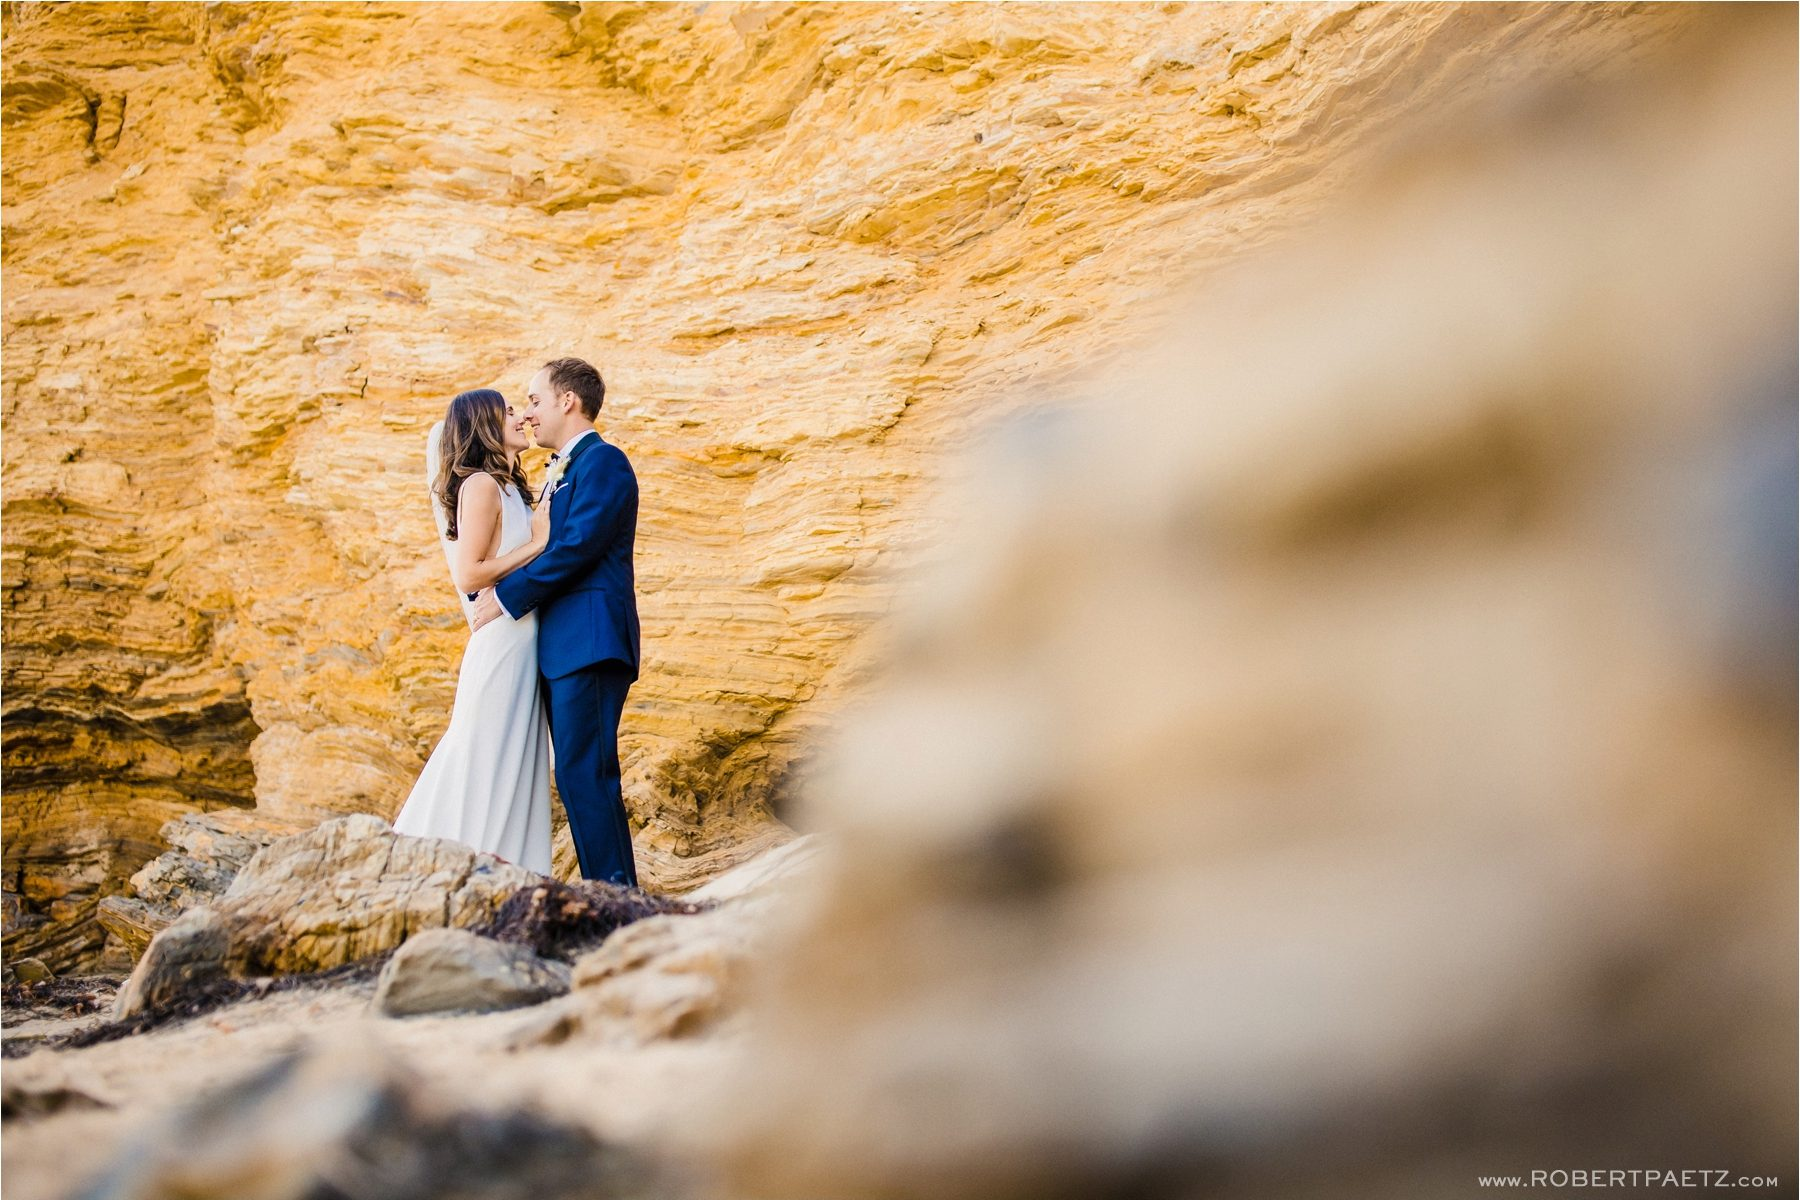 A intimate zoom wedding at Pelican Hill and Crystal Cove in Newport Beach, photographed by the west coast and destination photographer Robert Paetz.